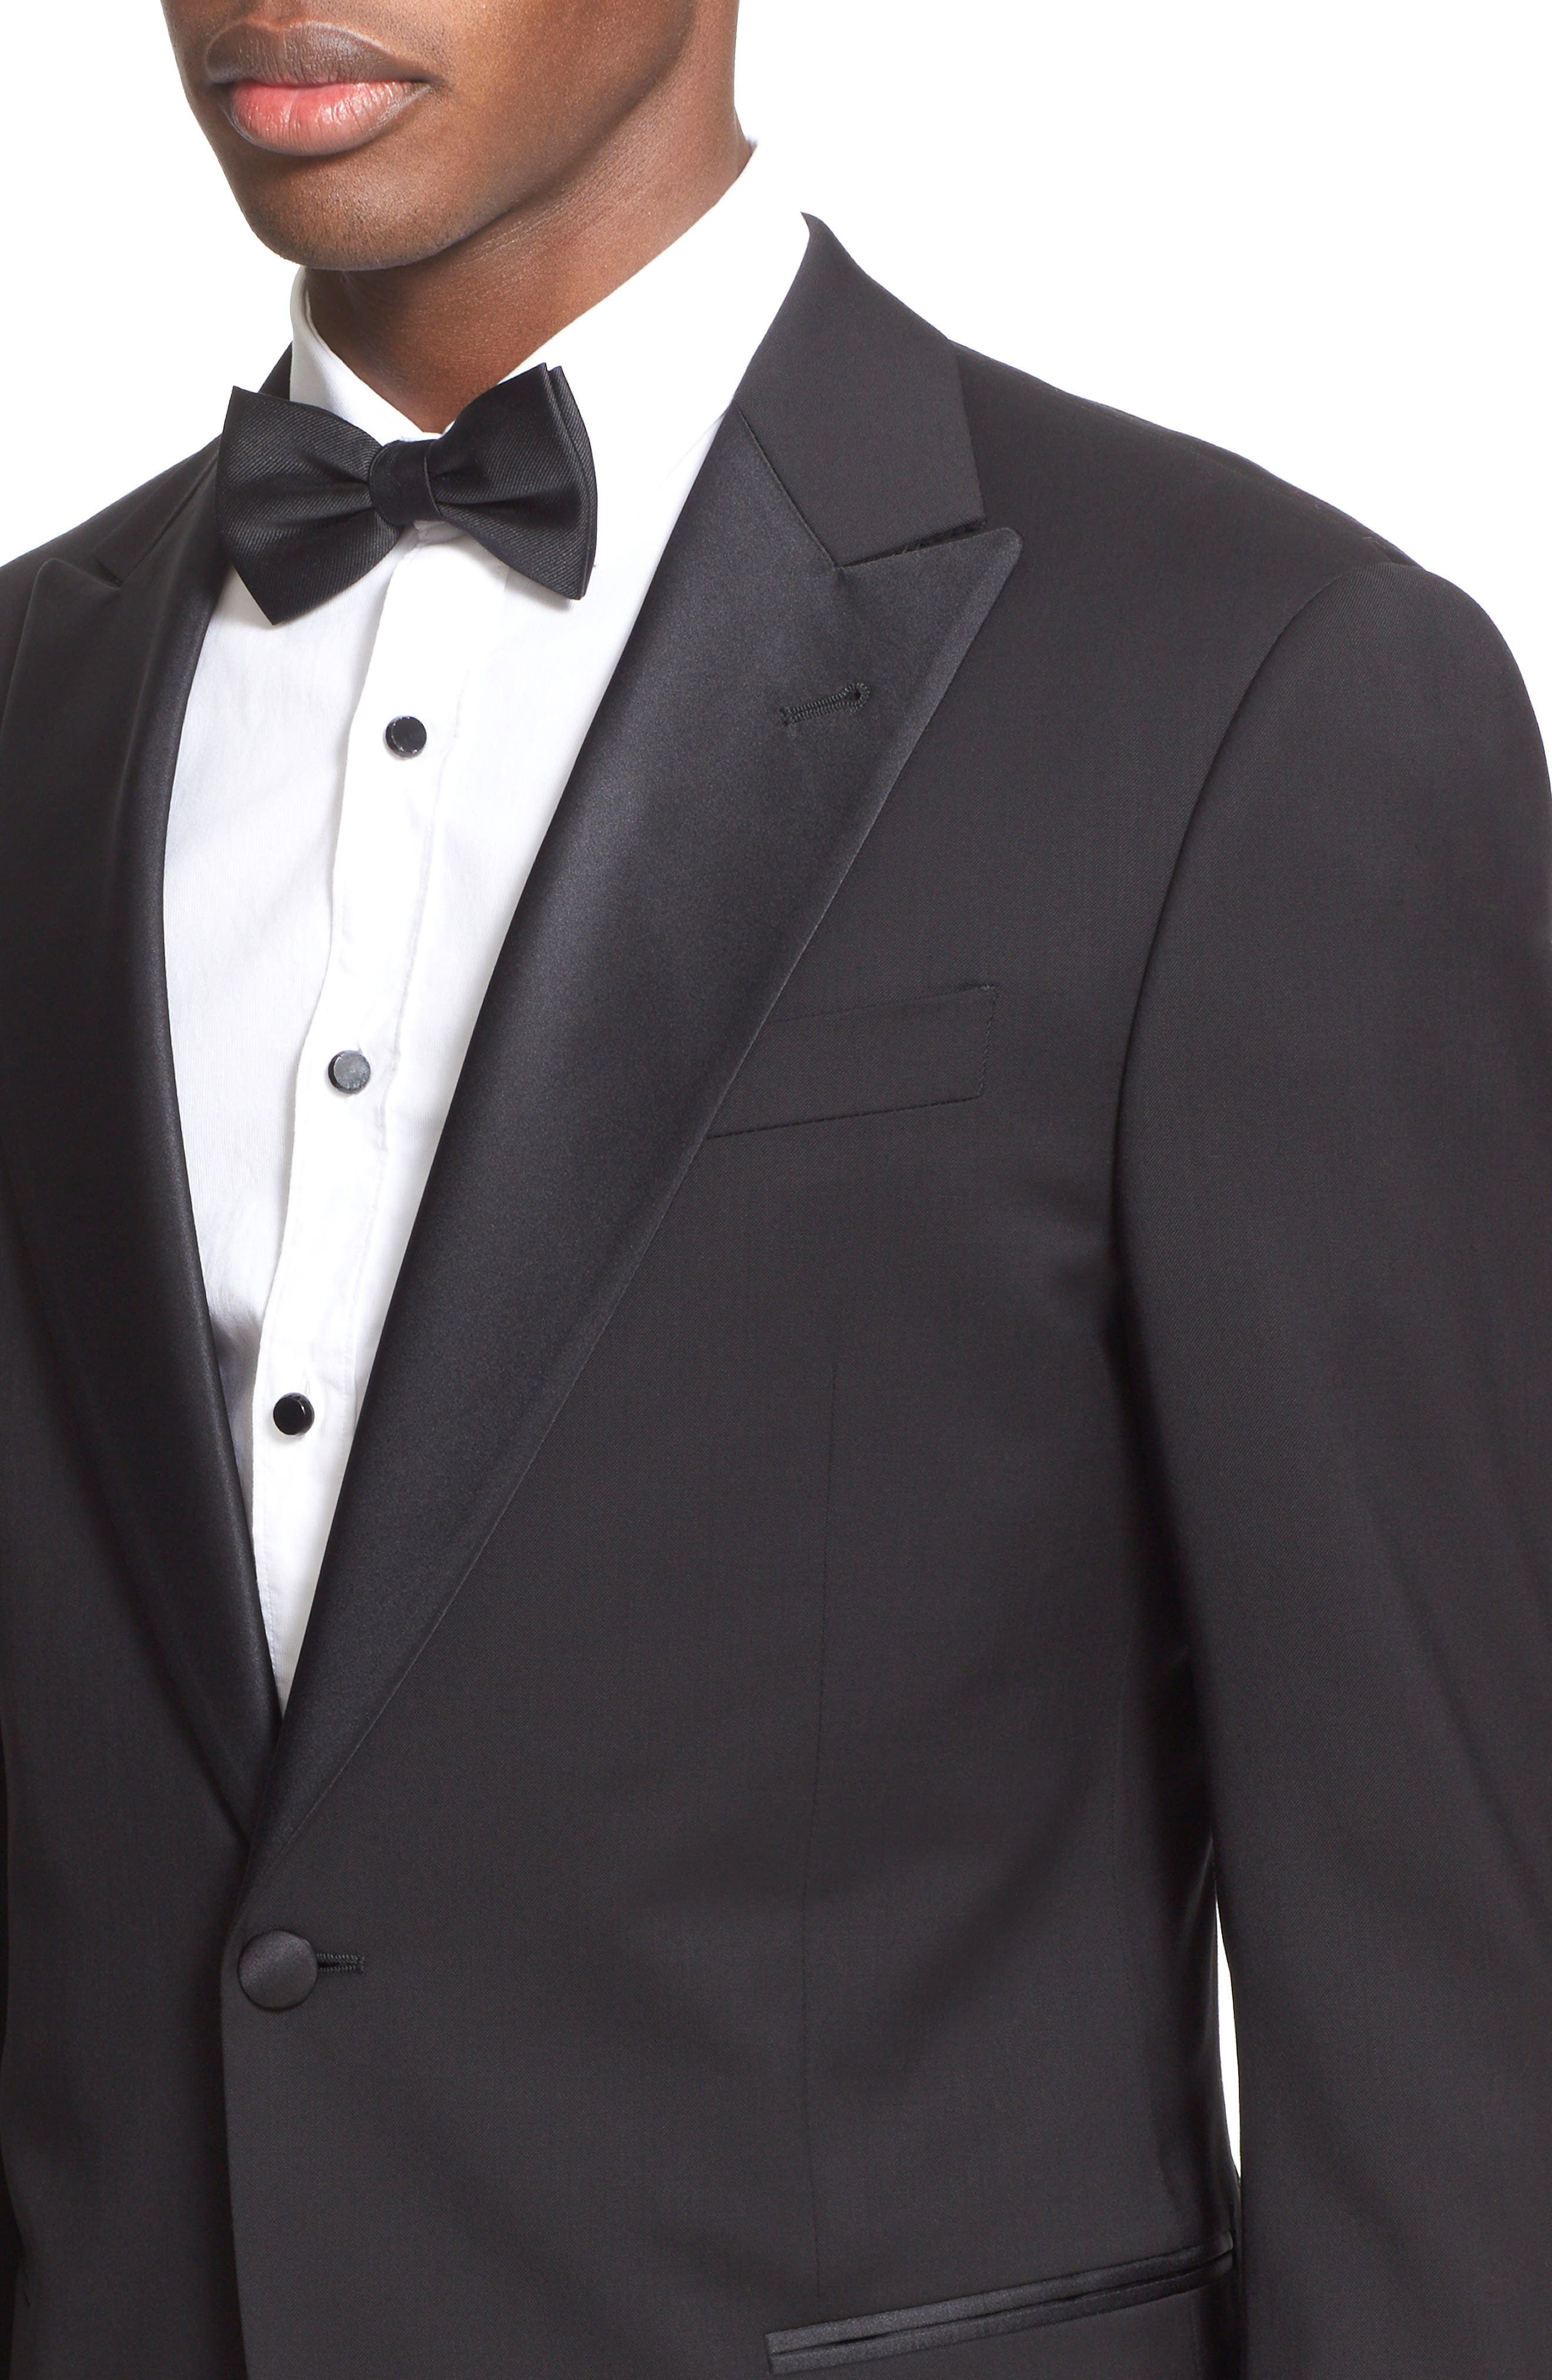 Trim Fit Wool Tuxedo,                             Alternate thumbnail 6, color,                             001